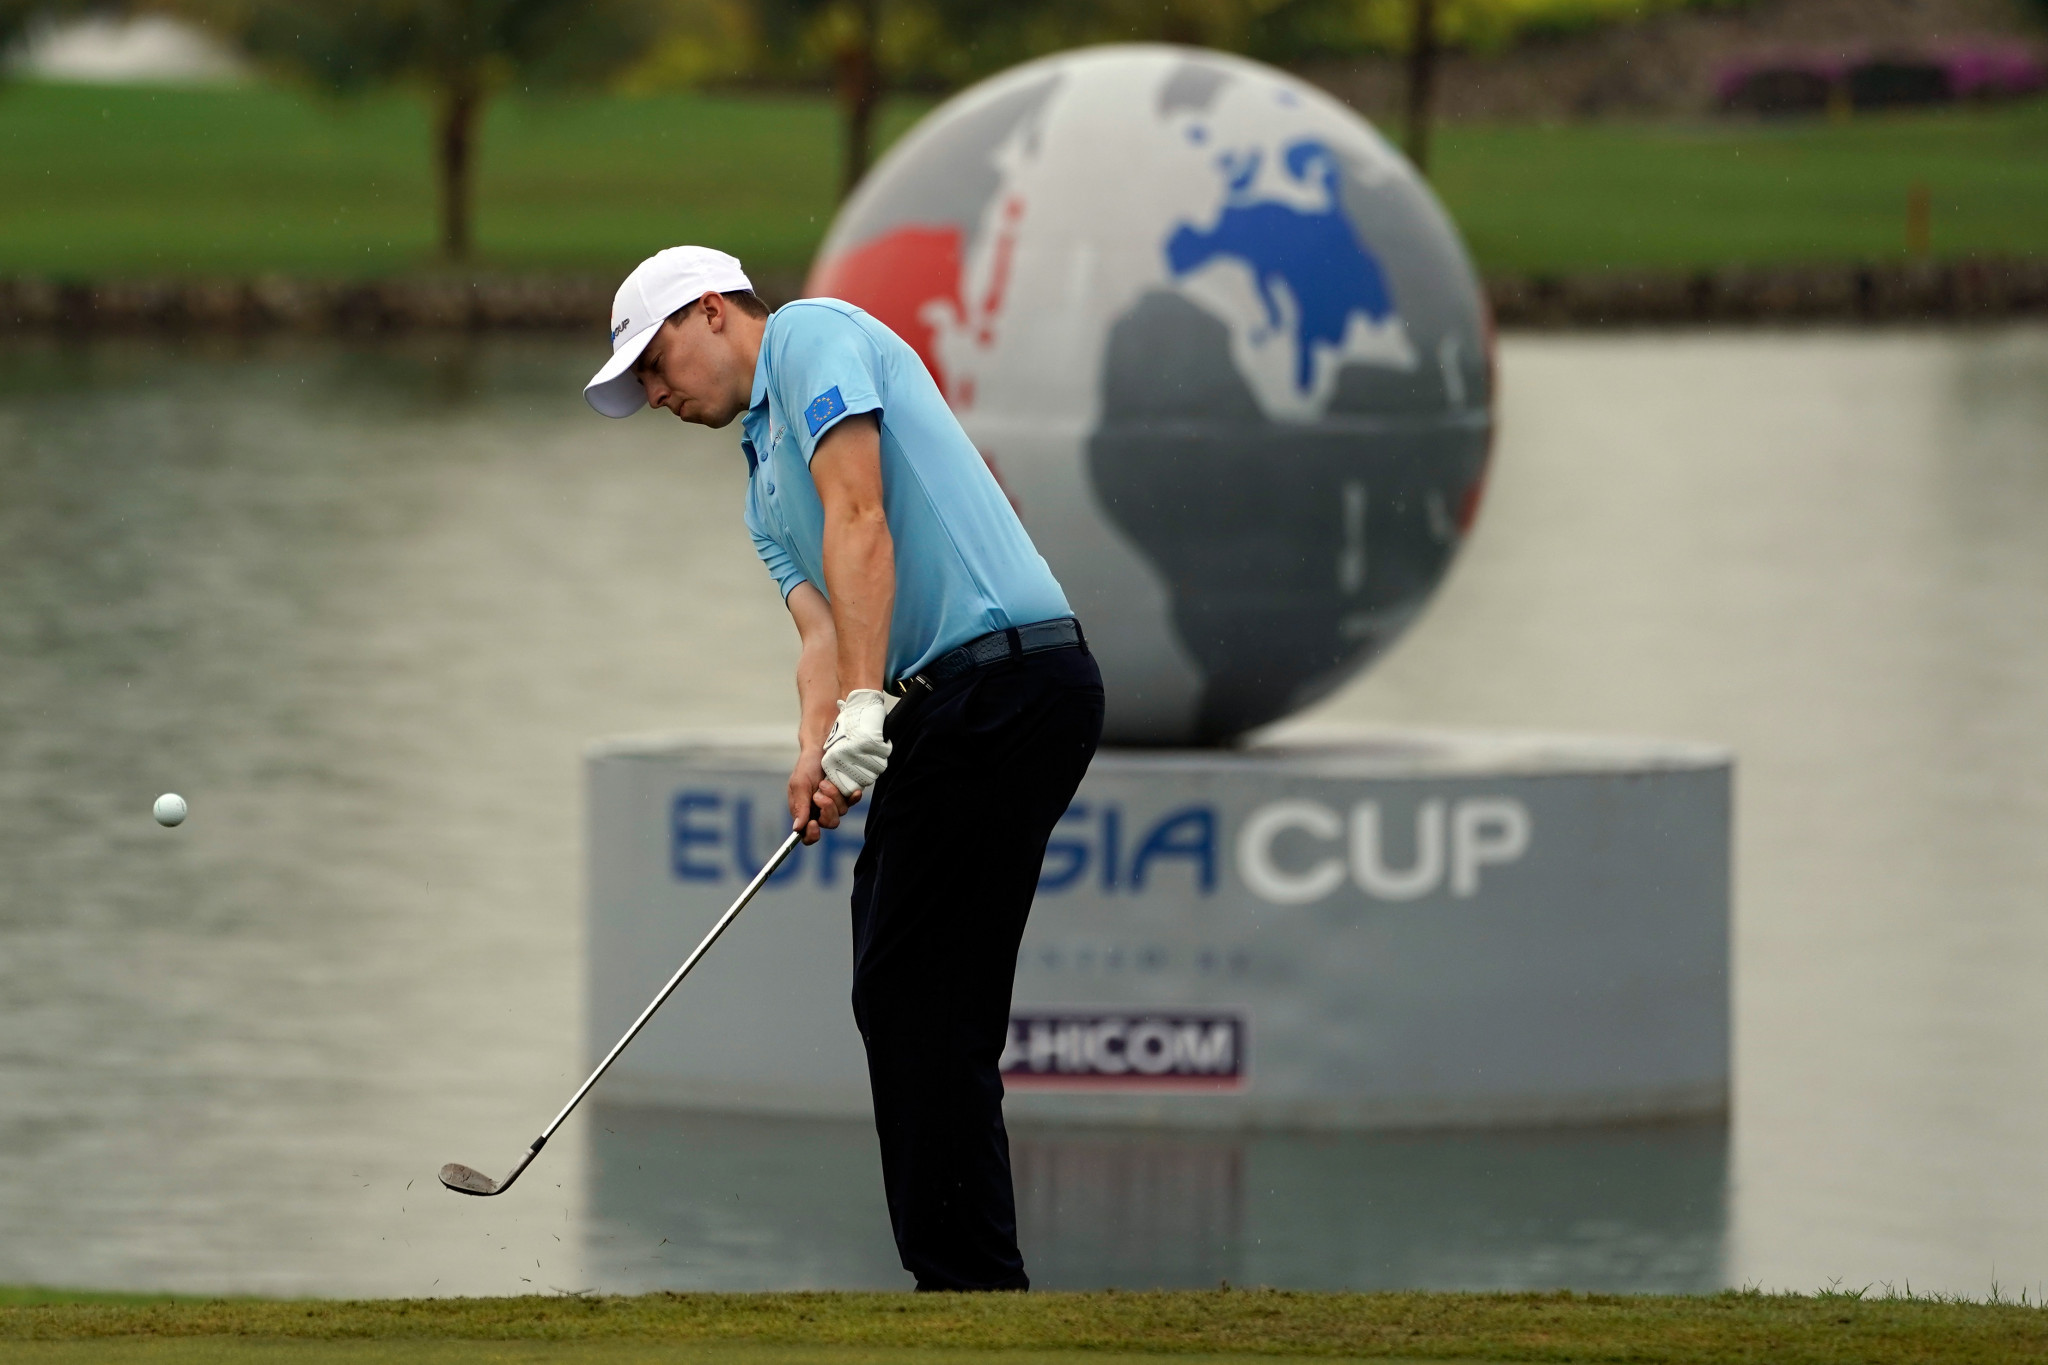 Bjørn insists Europe can overturn Asia's slim lead to lift 2018 EurAsia Cup